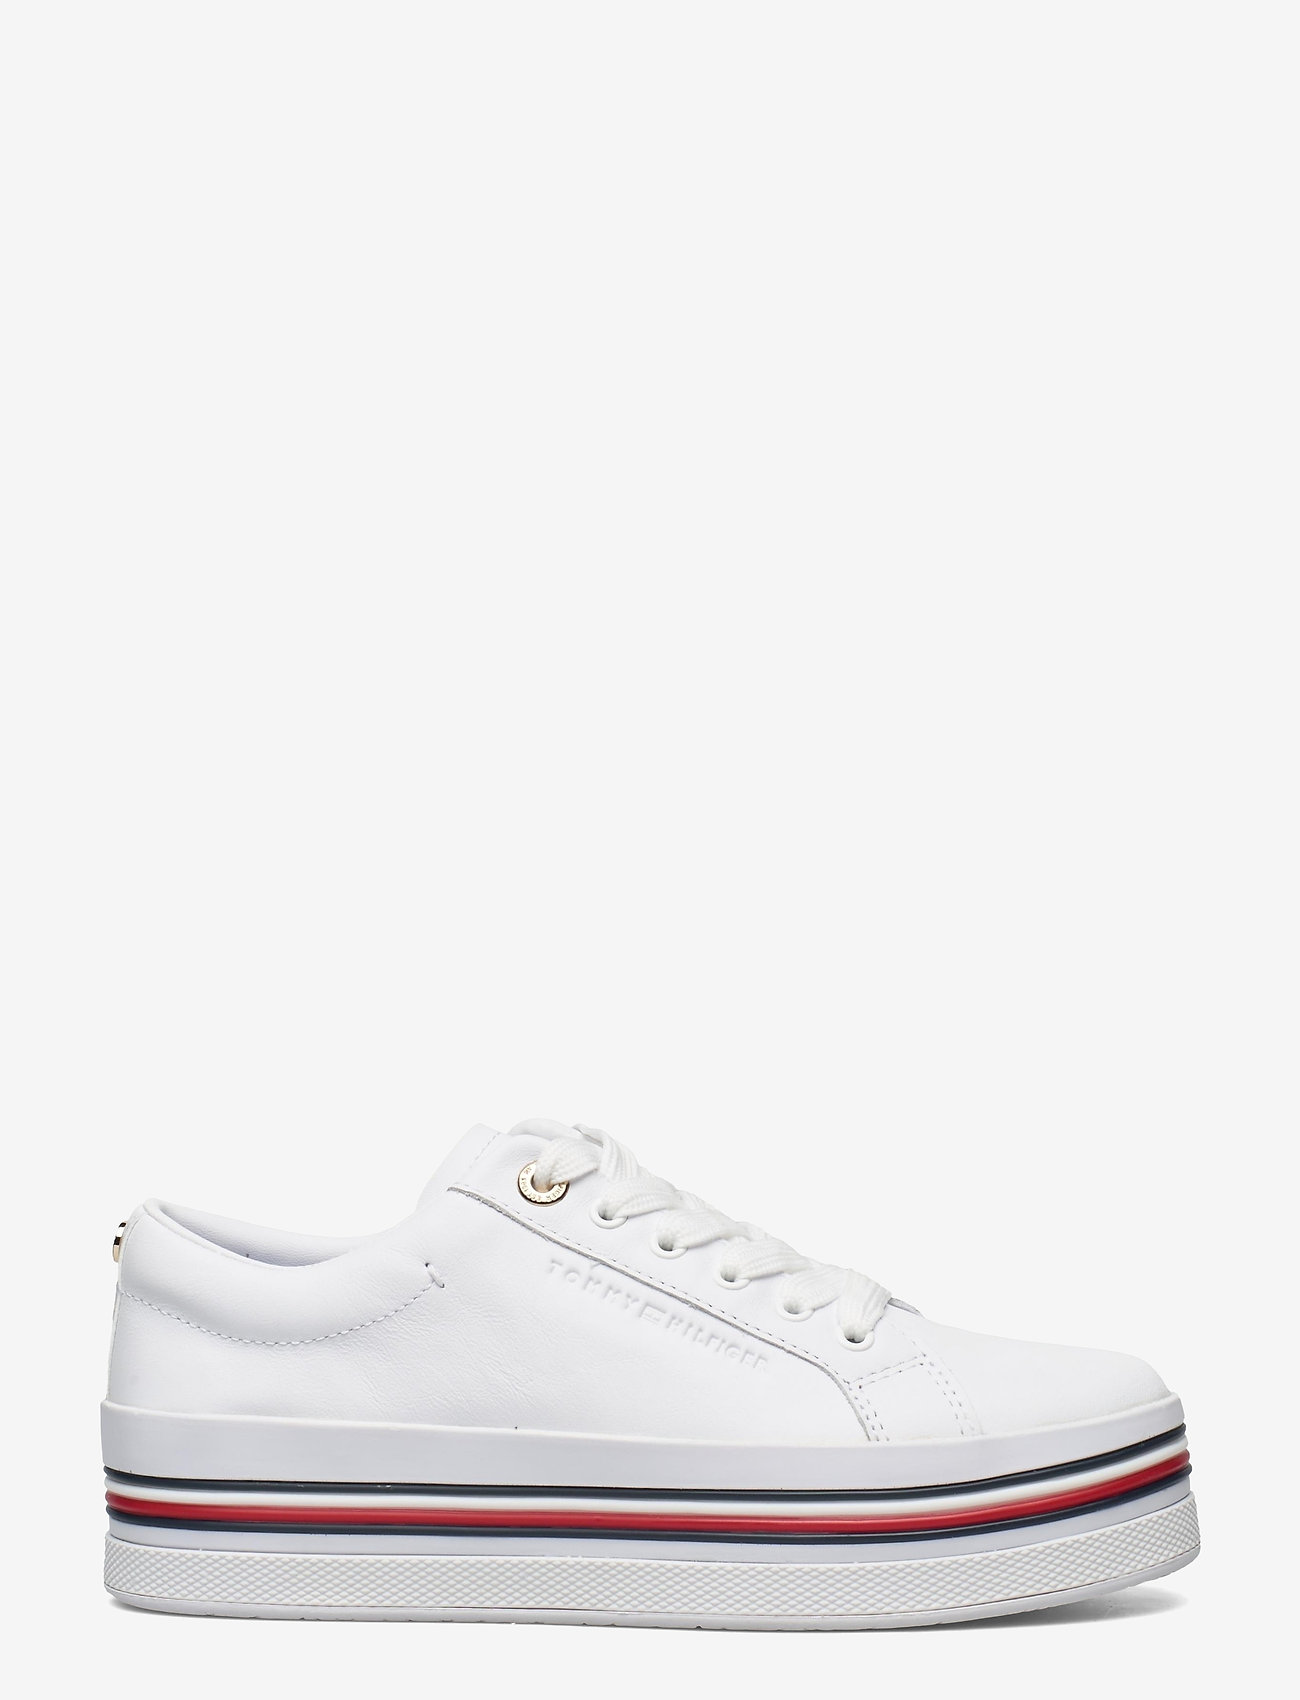 Tommy Hilfiger - CORPORATE FLATFORM CUPSOLE - sneakers - white - 1